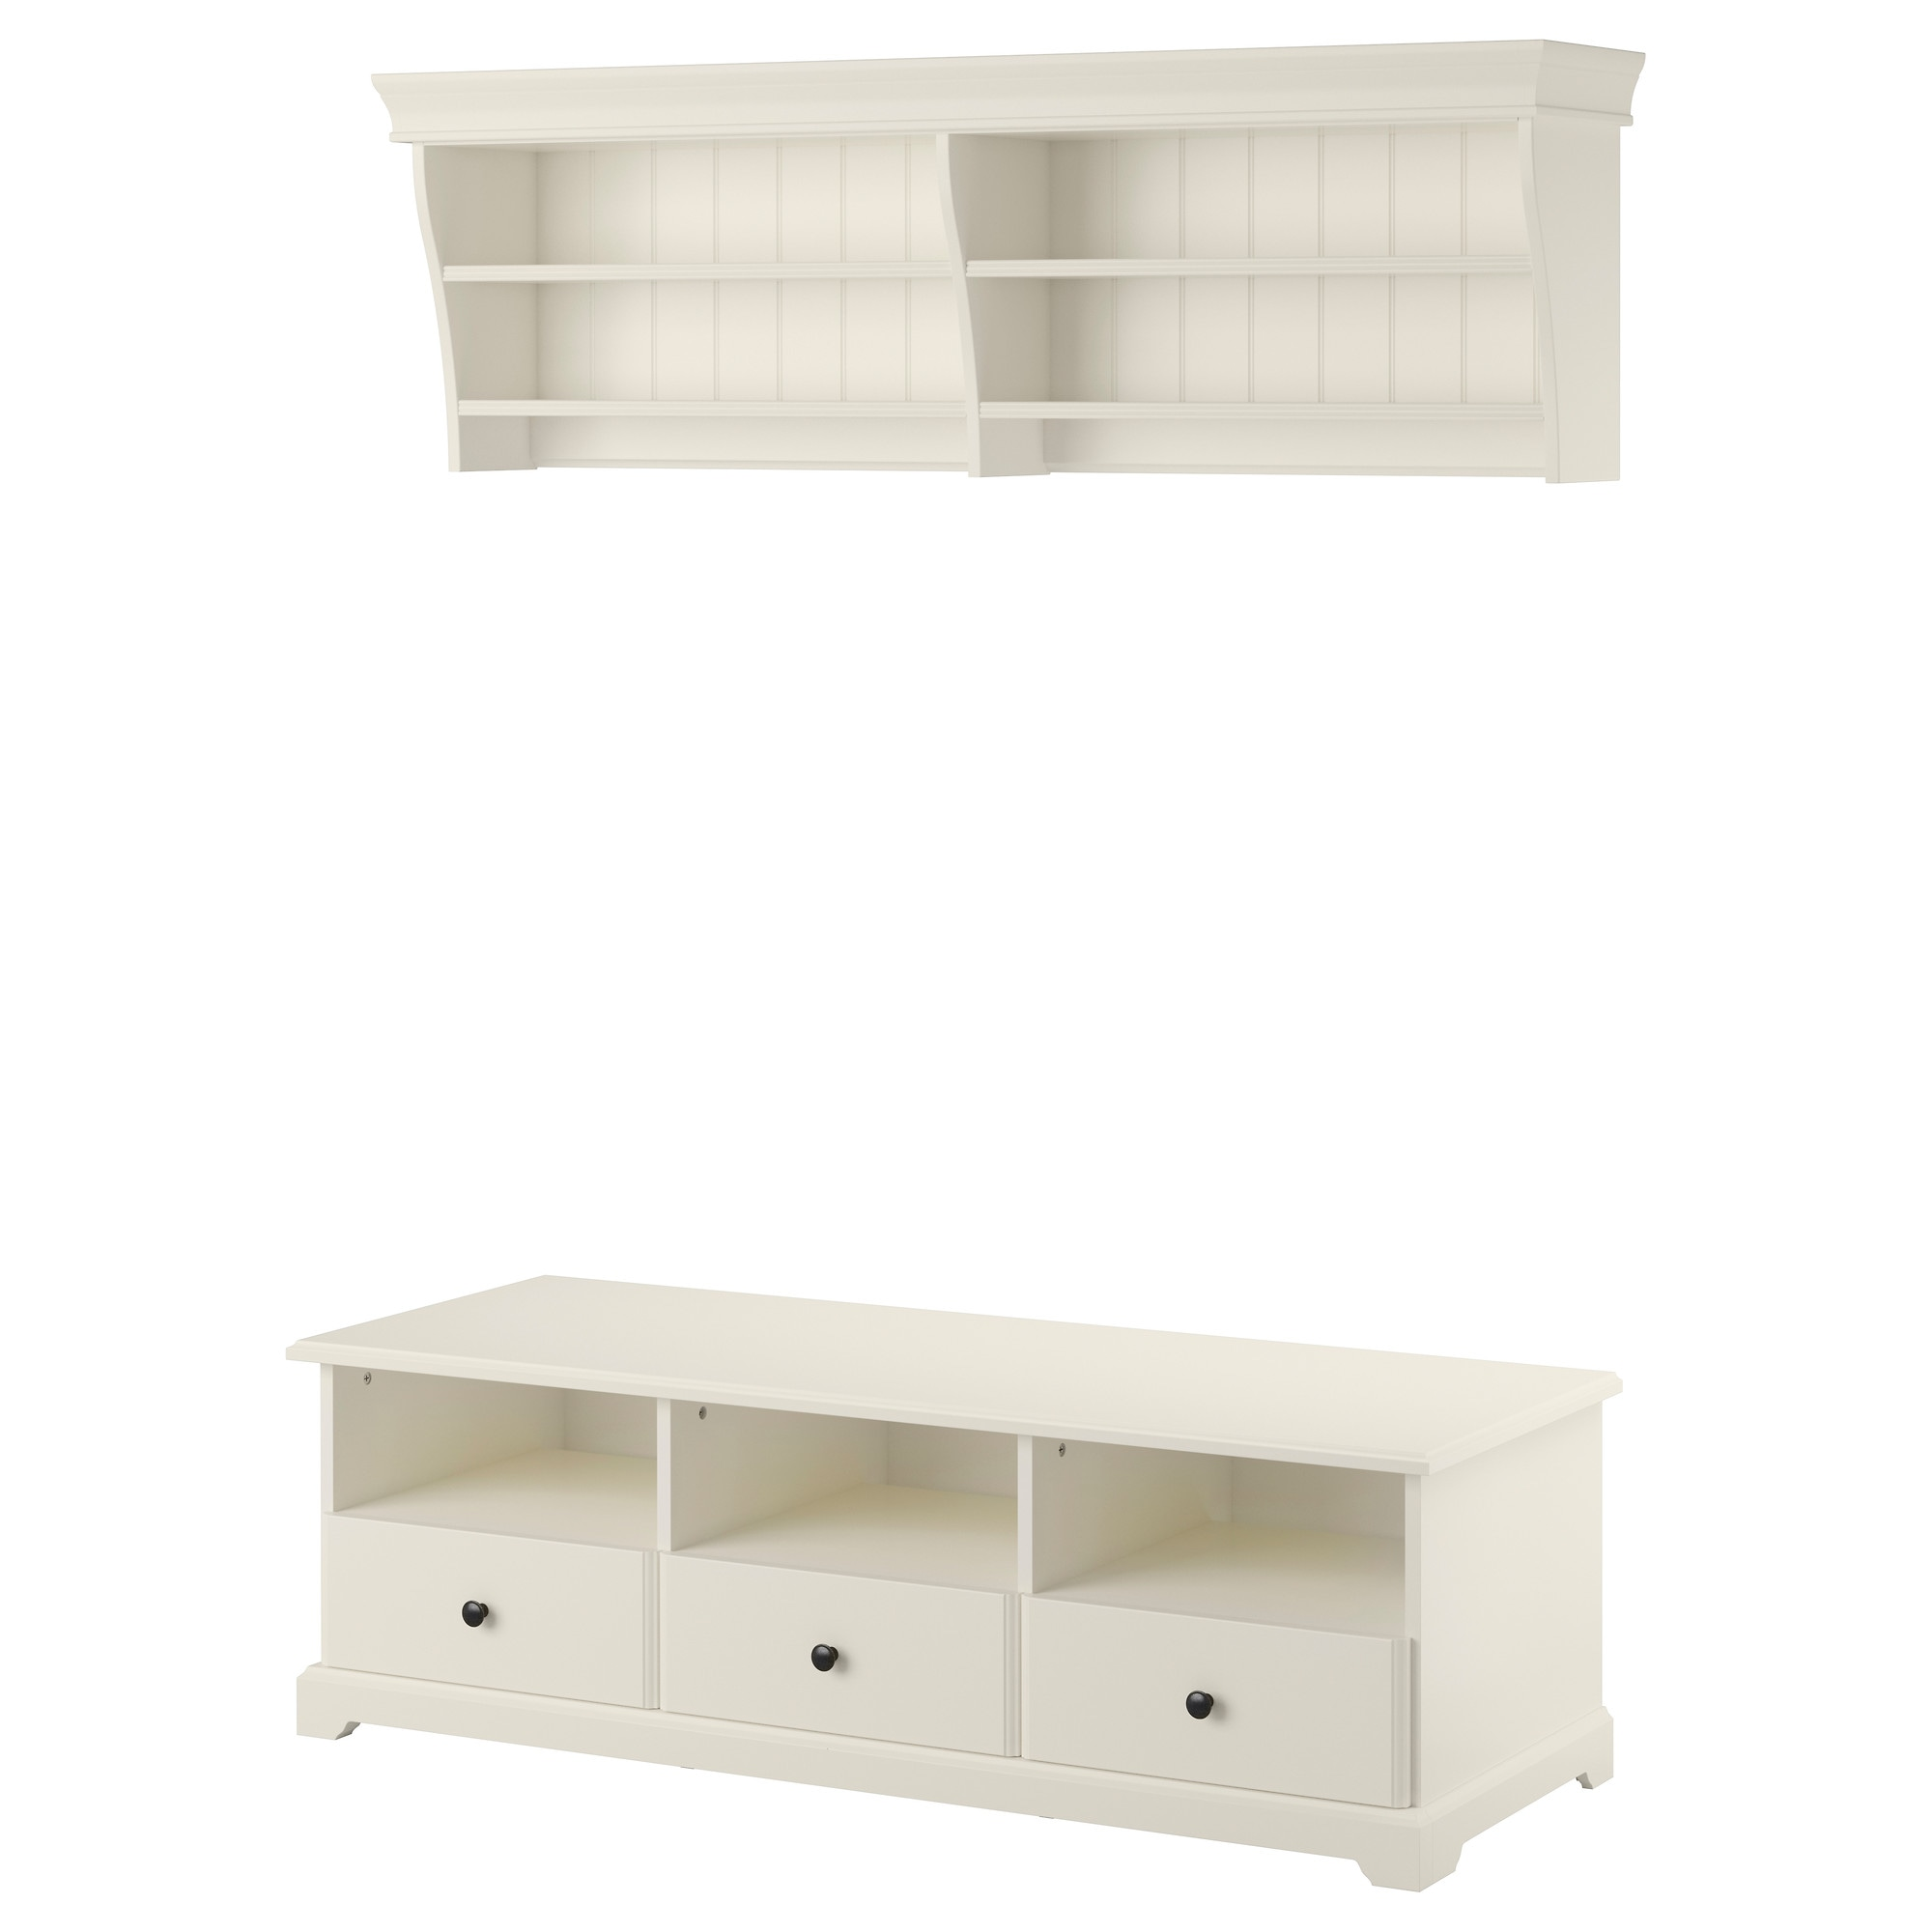 Liatorp Tv Storage Combination White Ikea # Combinaison Besta Et Liatorp